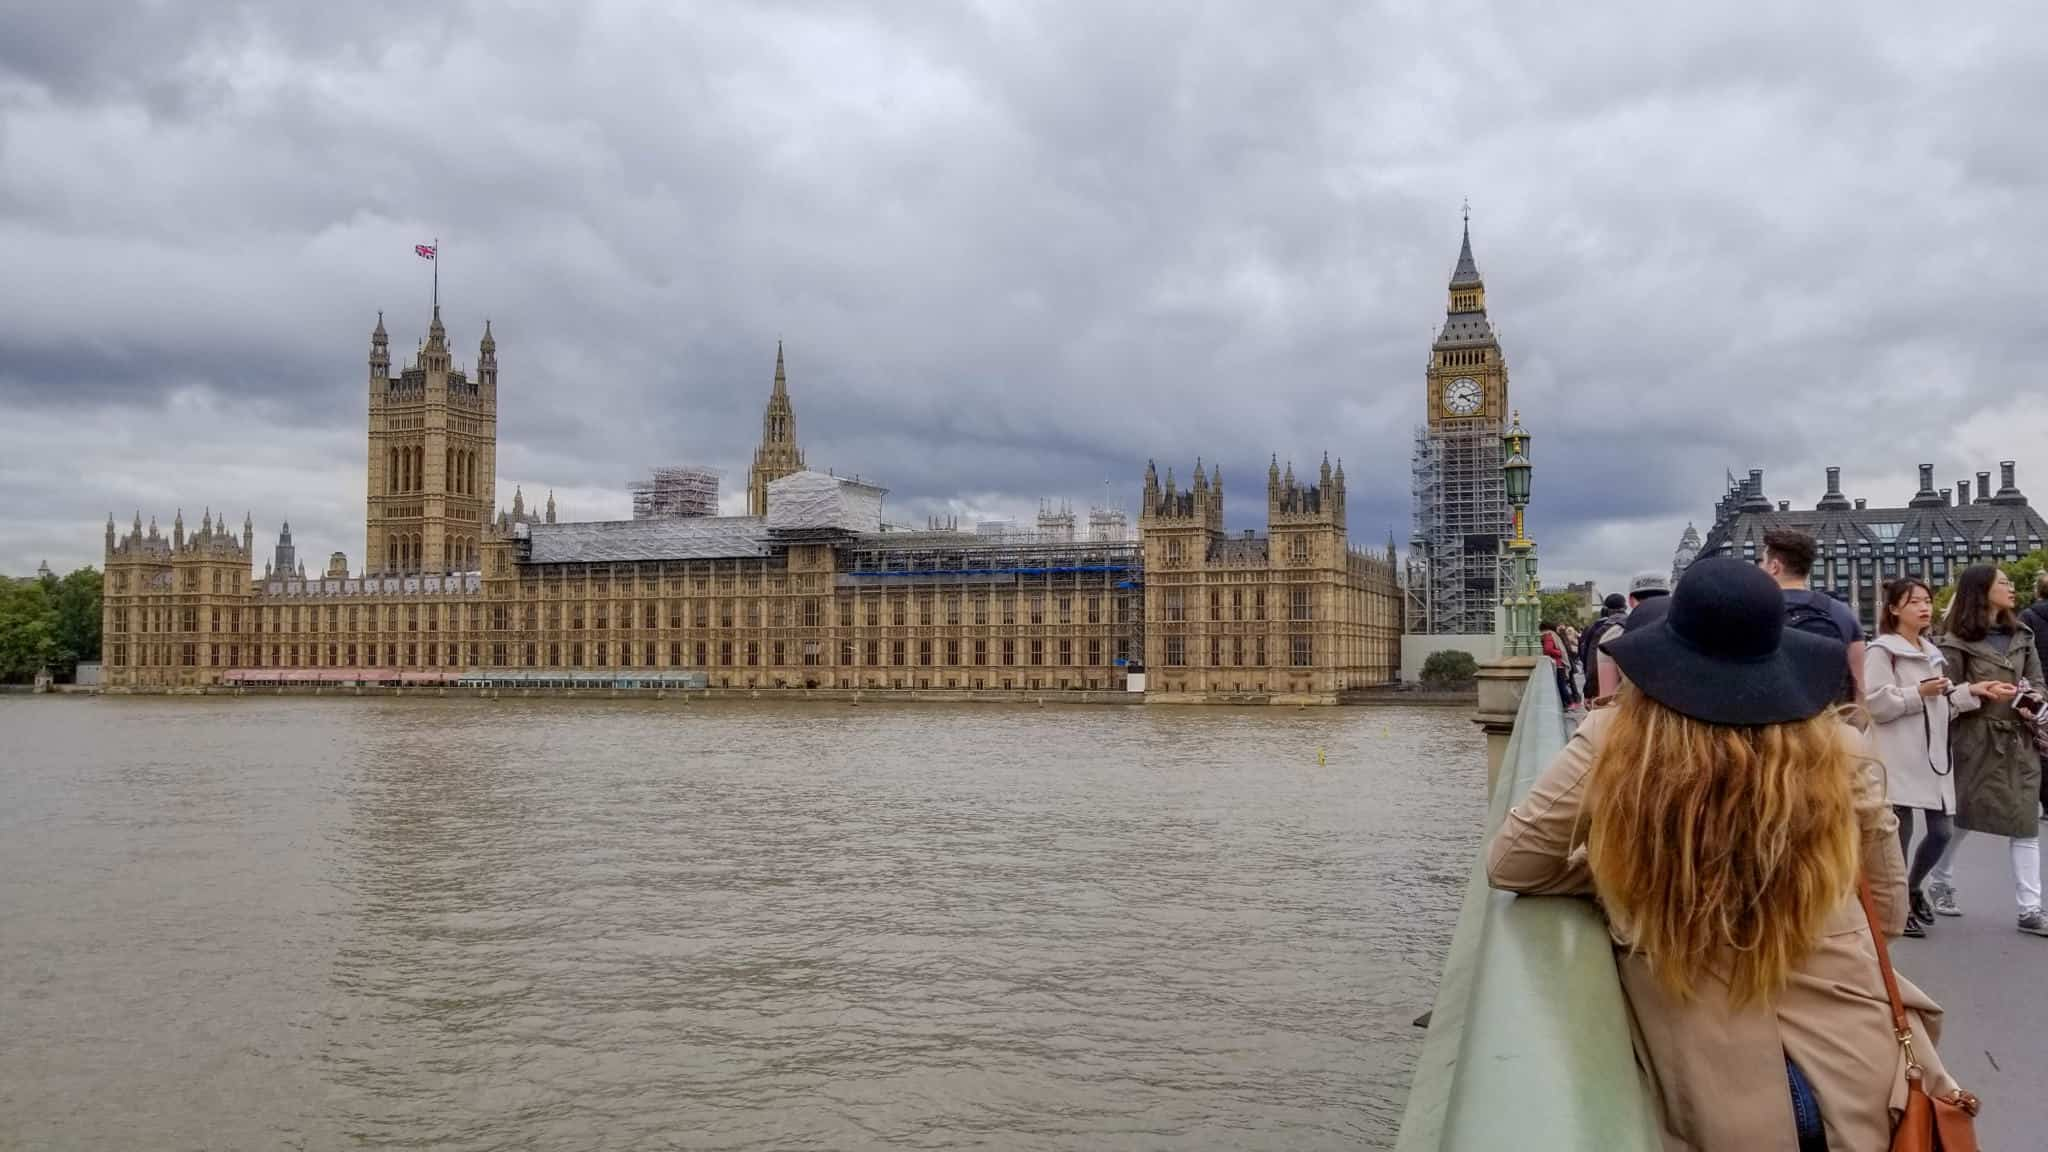 My absolute favorite place: London